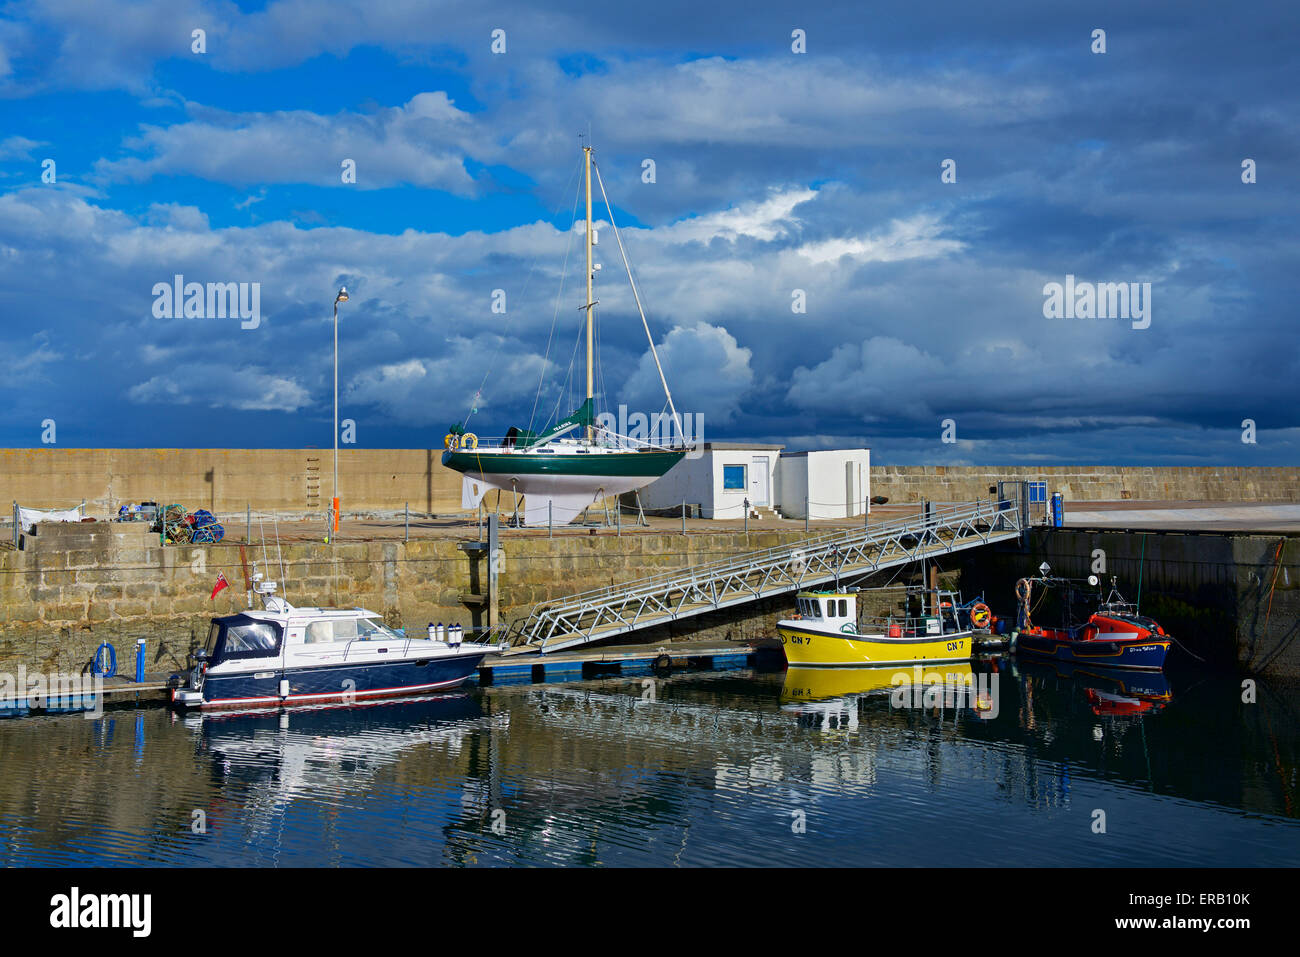 Boats in the harbour, Lossiemouth, Moray, Scotland - Stock Image